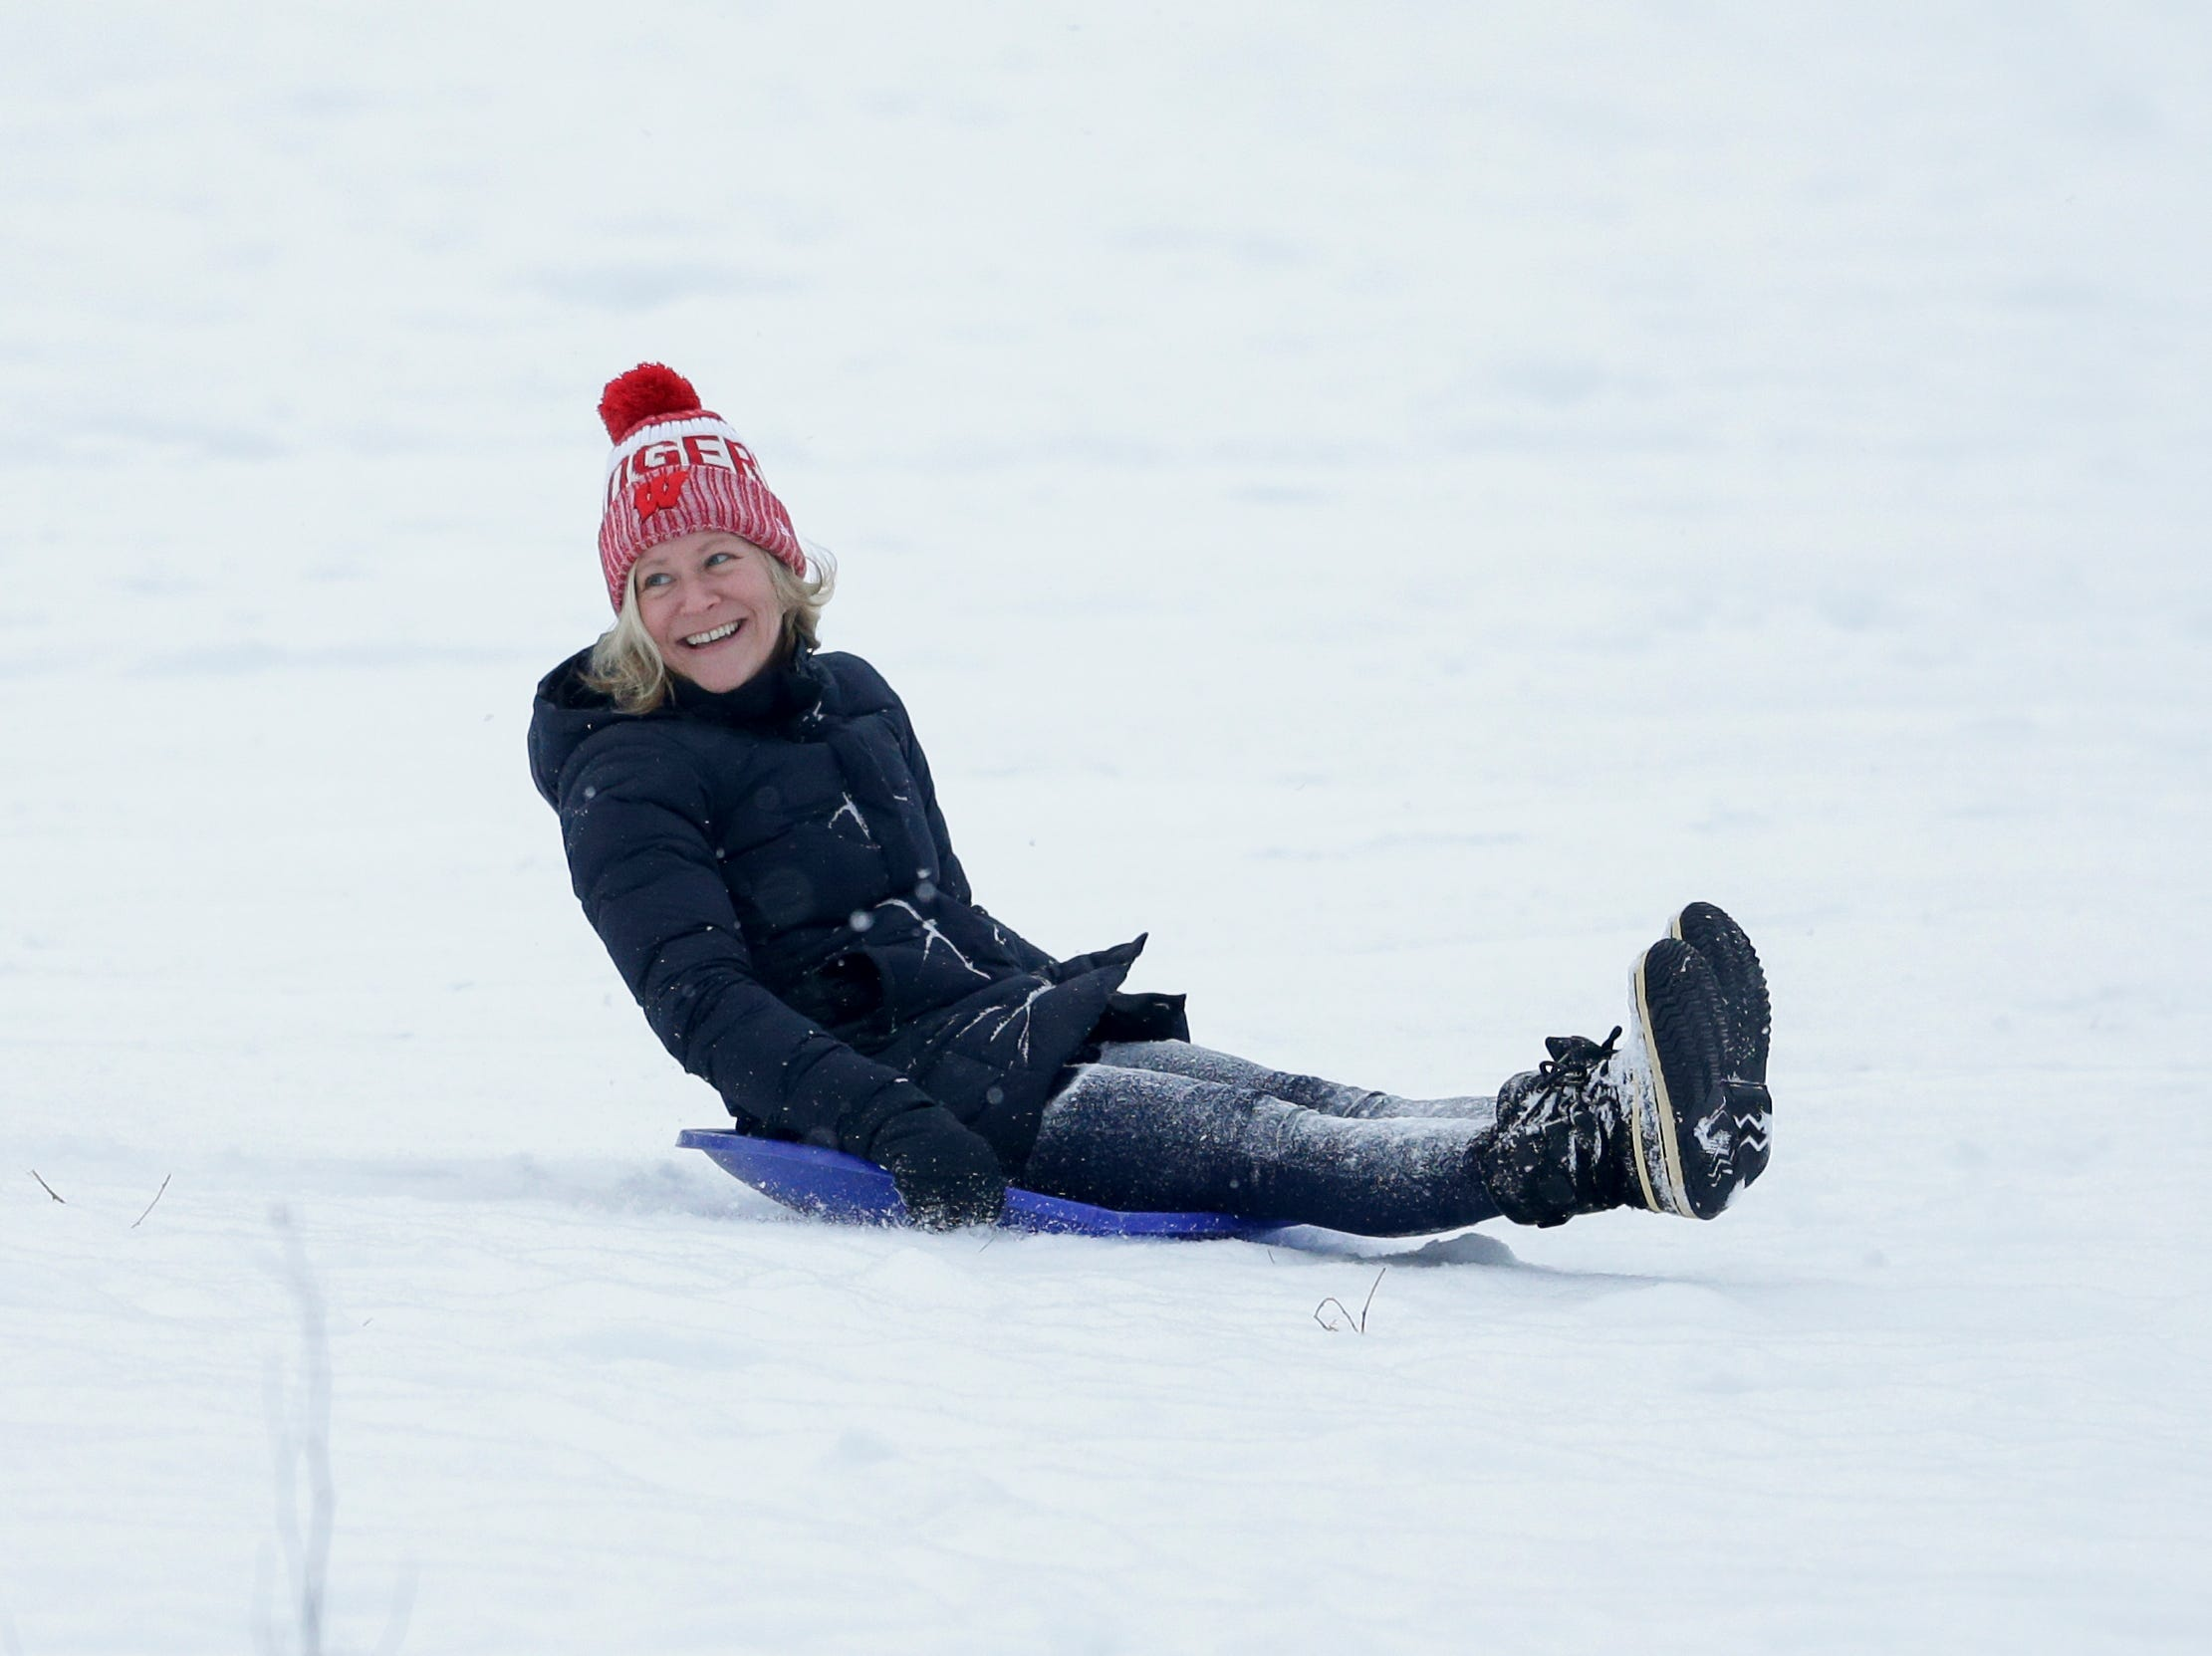 Carrie Dunn takes a turn down the hill while sledding with her son at Silver Creek Park Wednesday, January 2, 2019, in Manitowoc, Wis. Joshua Clark/USA TODAY NETWORK-Wisconsin